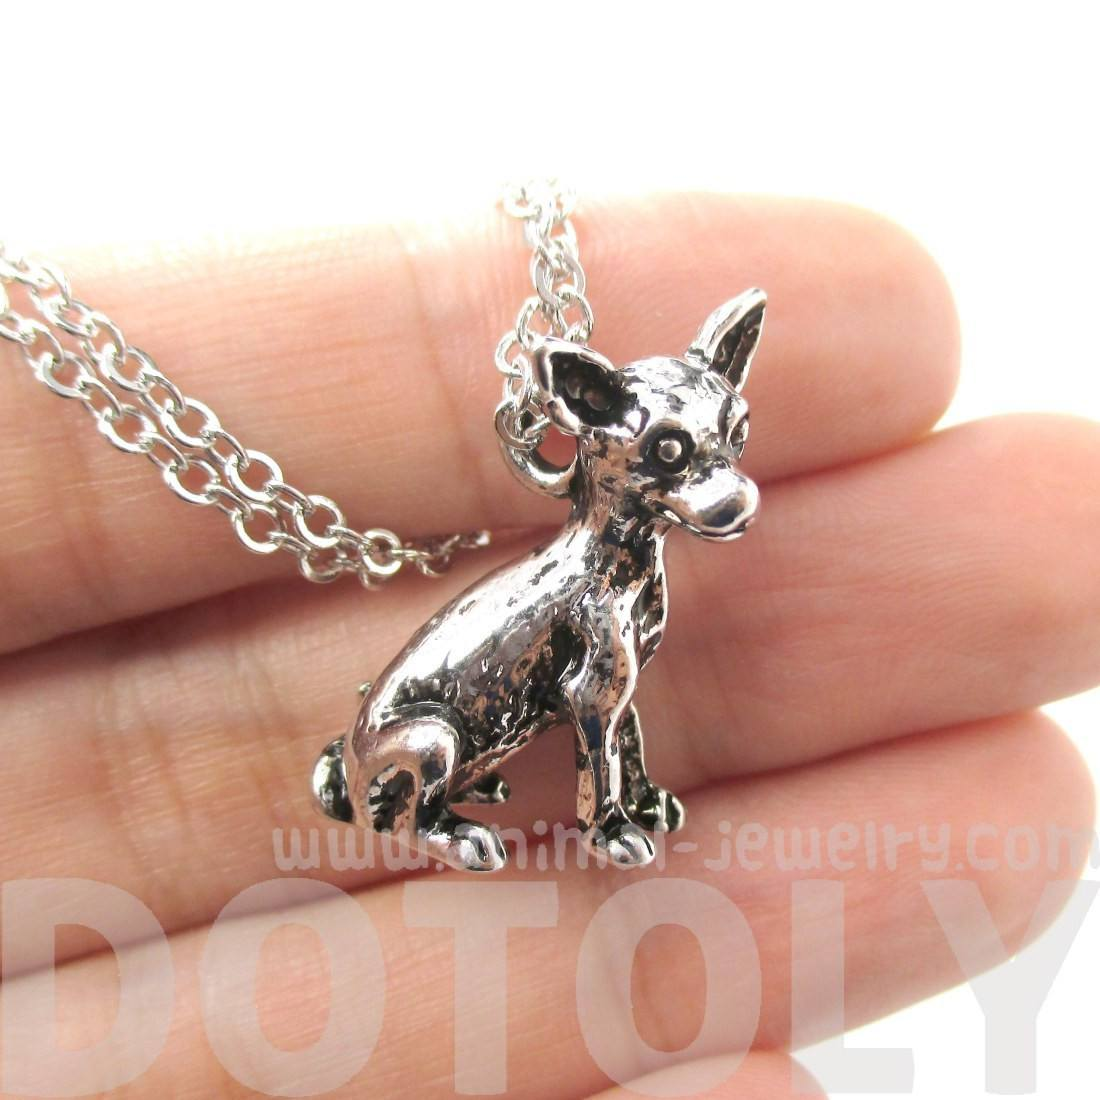 Realistic Chihuahua Dog Shaped Animal Pendant Necklace in Shiny Silver